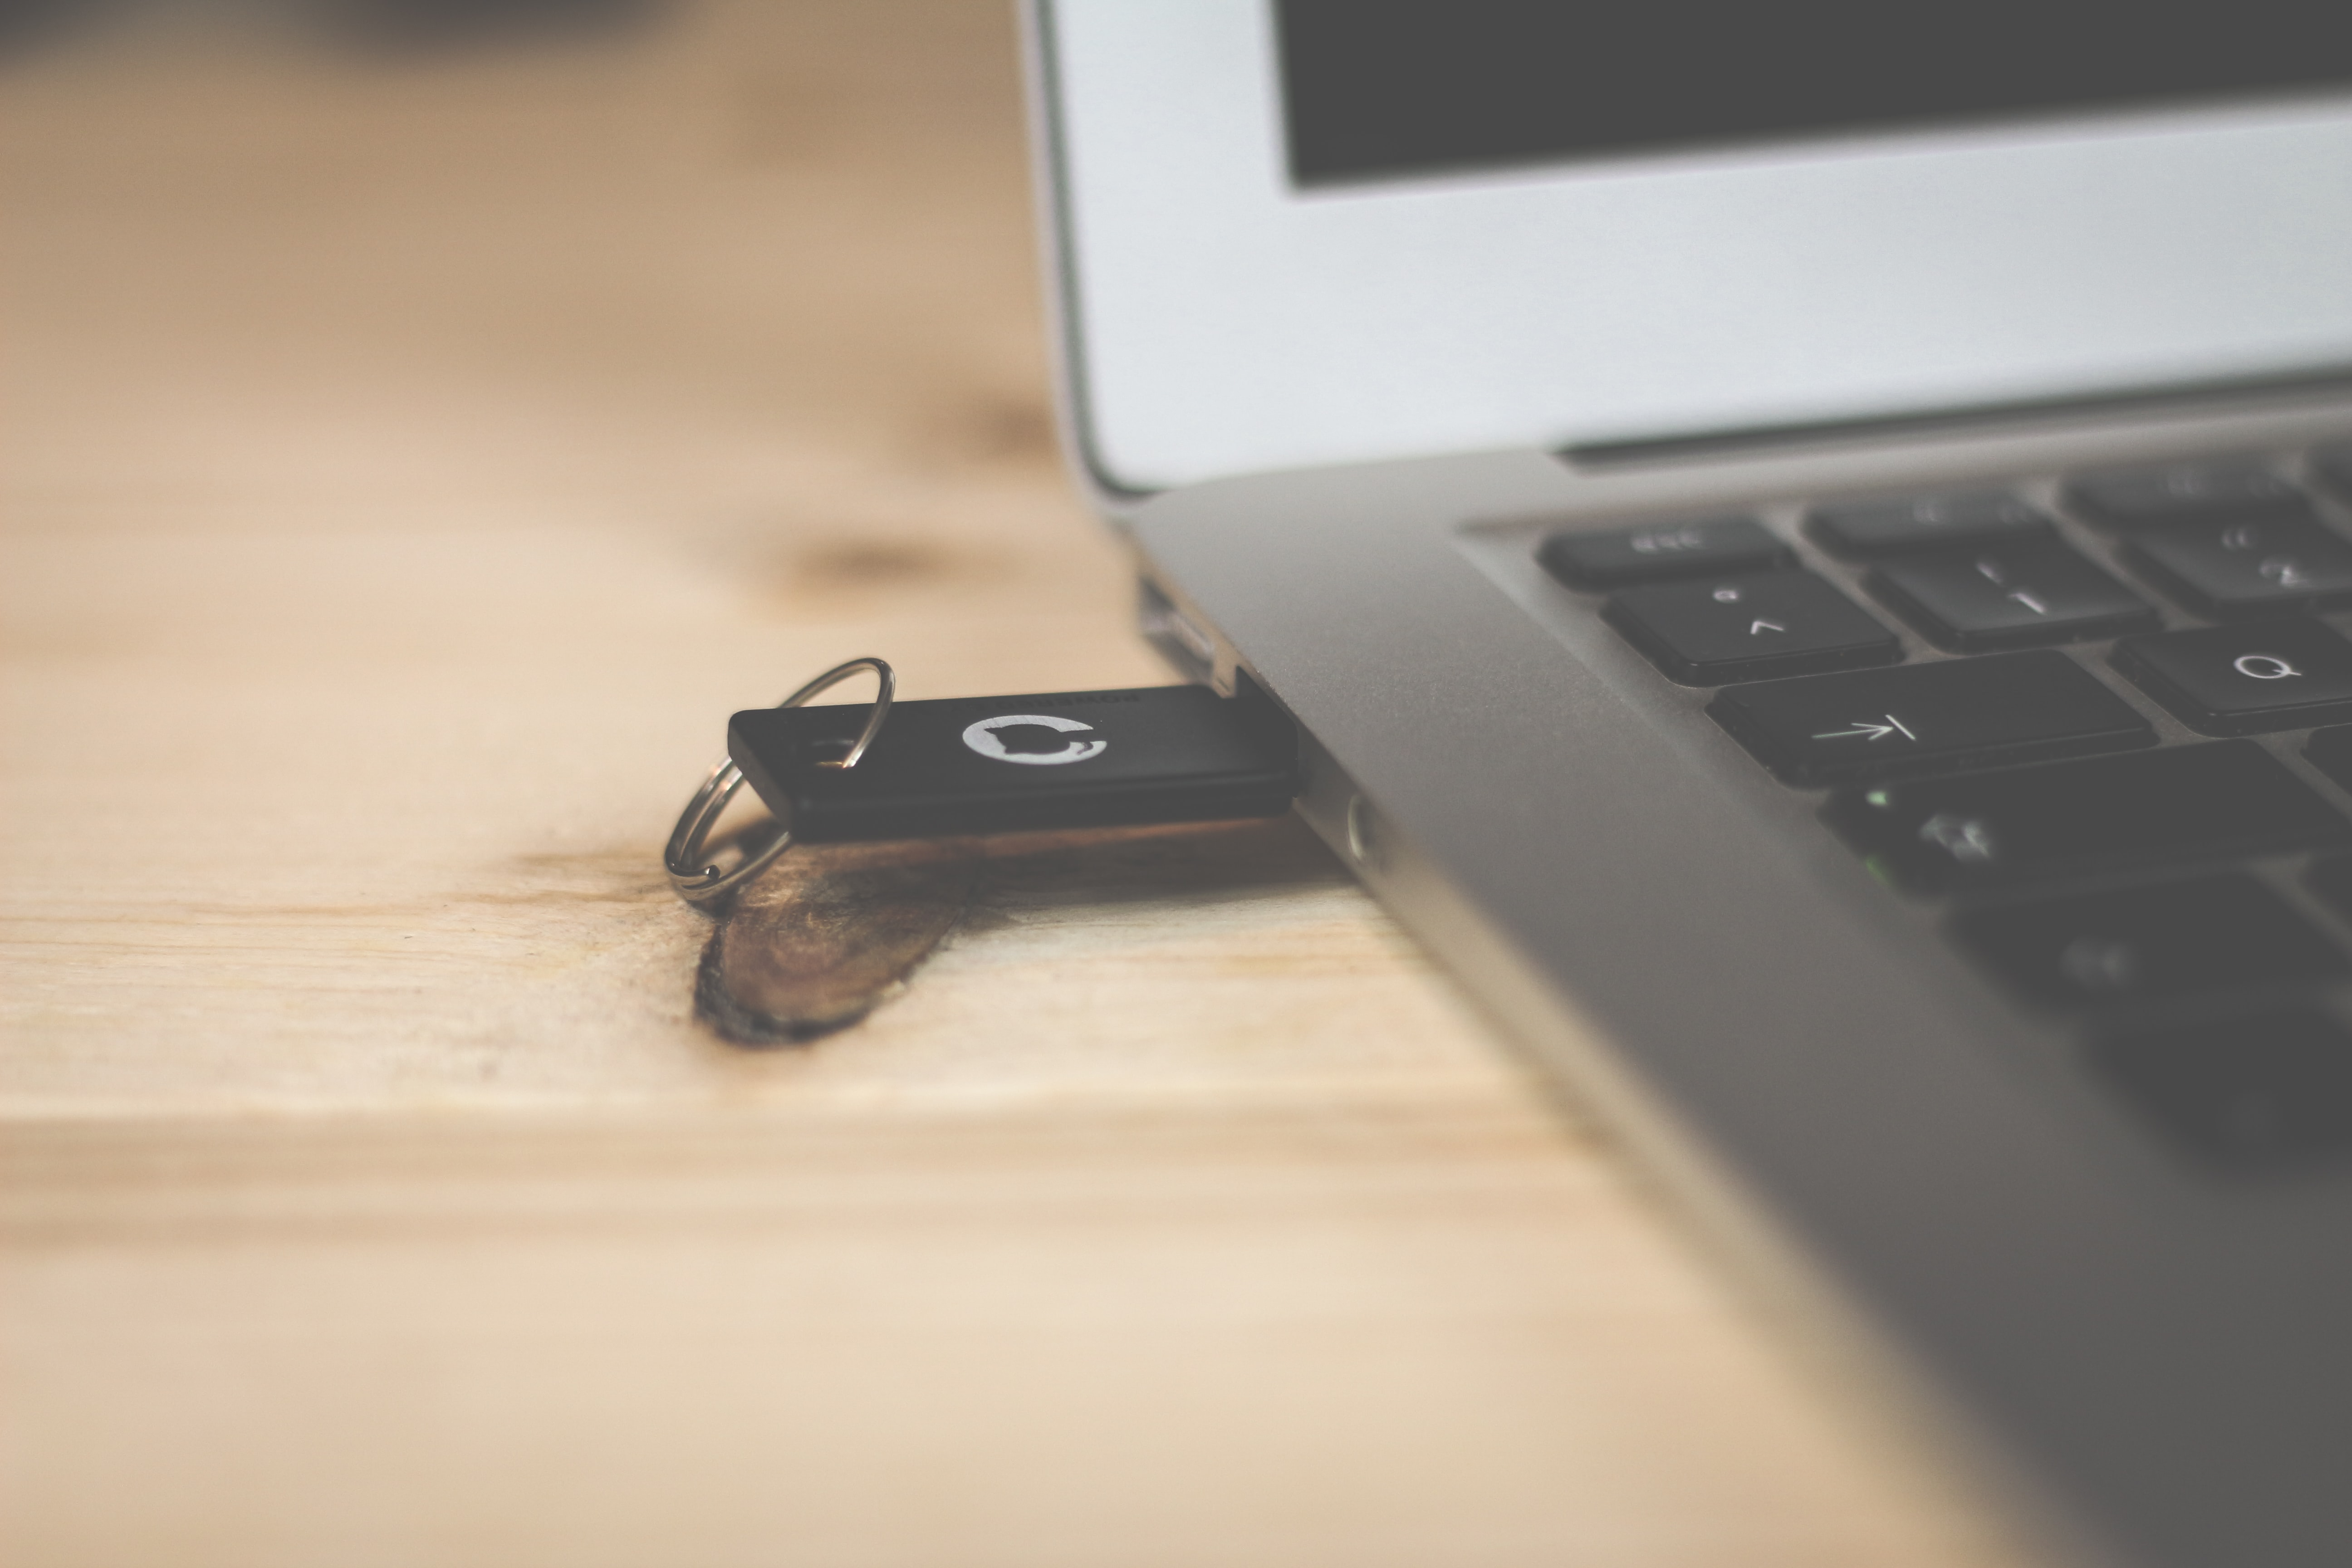 A pendrive in the USB port of a laptop